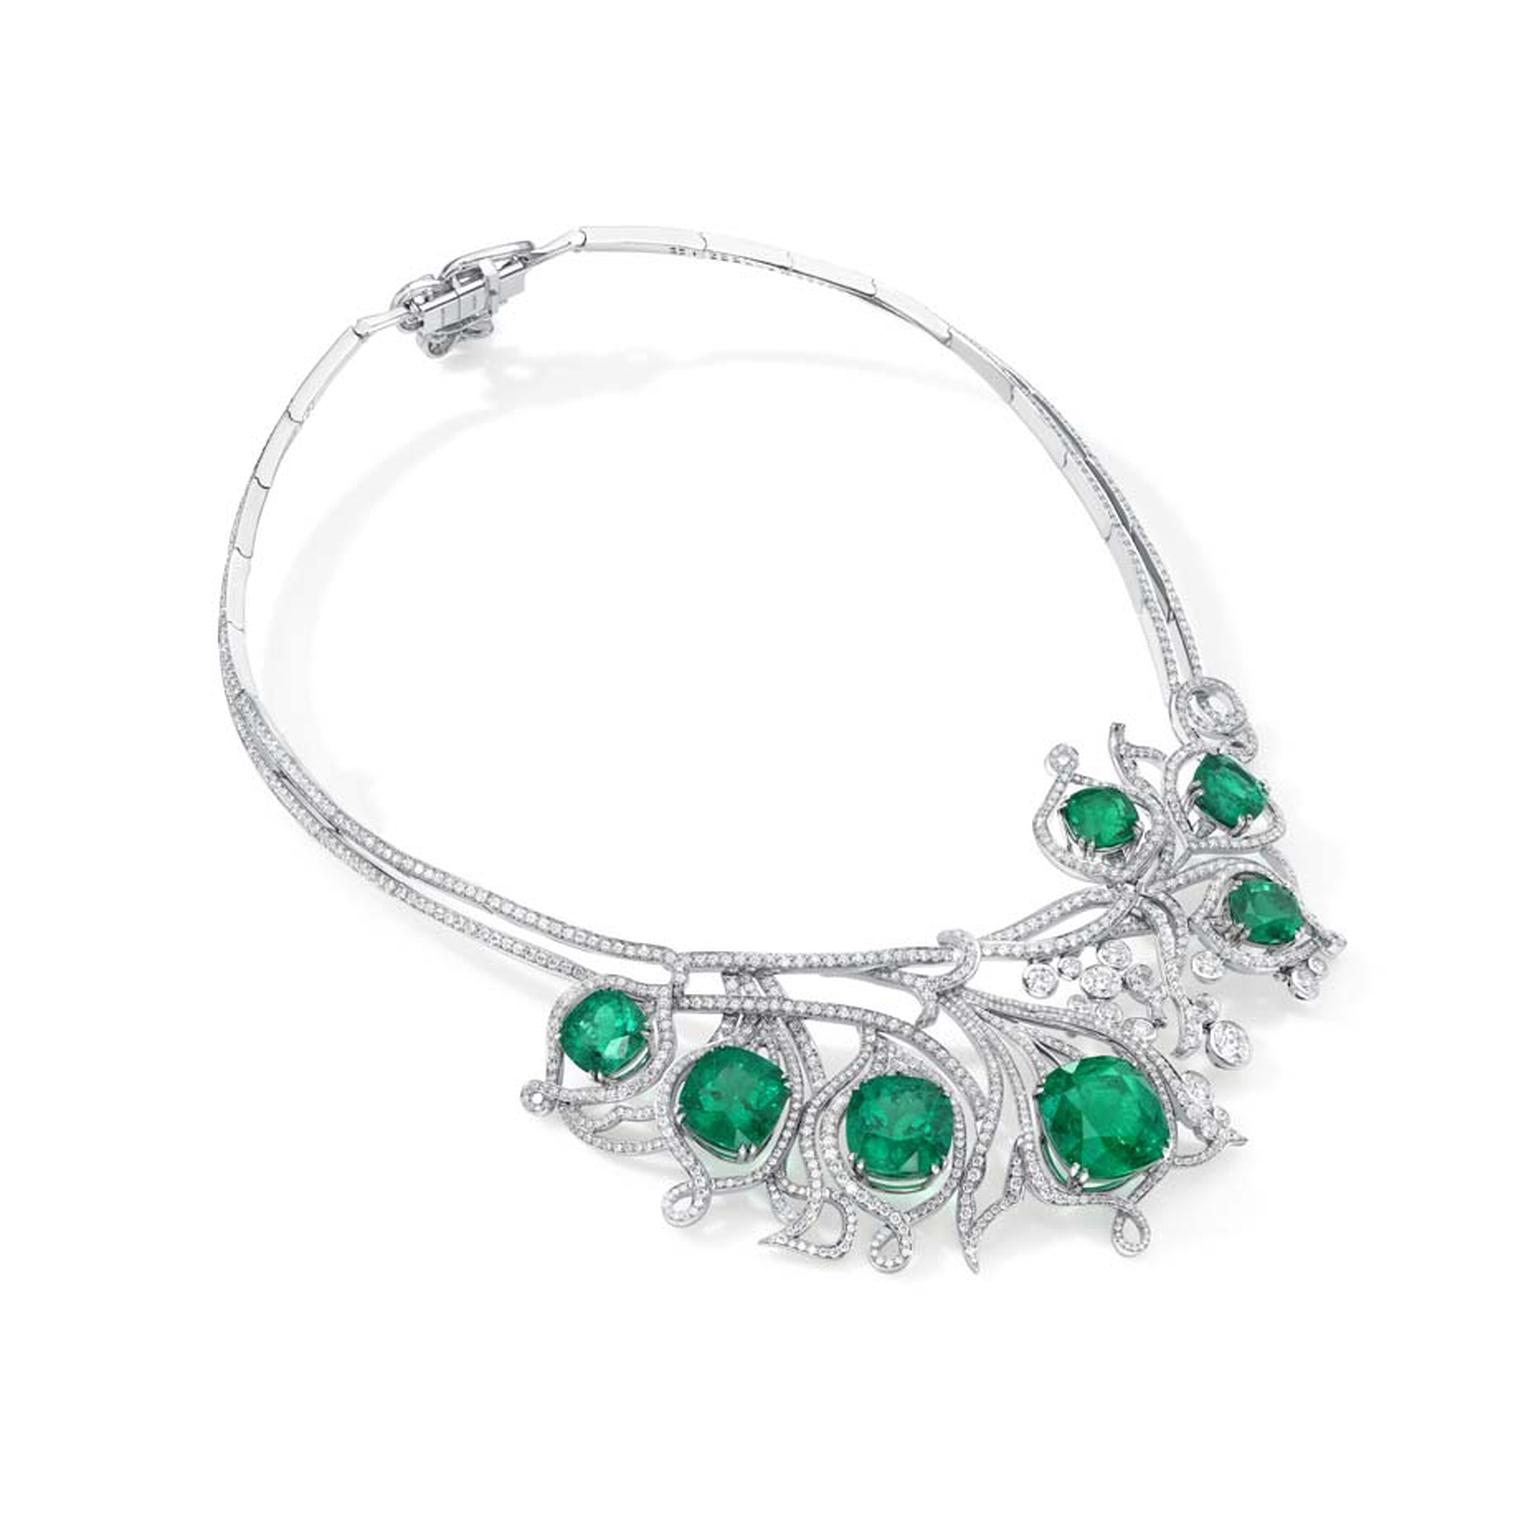 'The Million Pound Necklace: Inside Boodles' follows the creation of the one-of-a-kind Boodles Greenfire necklace, which took a jaw-dropping 1,800 hours of work